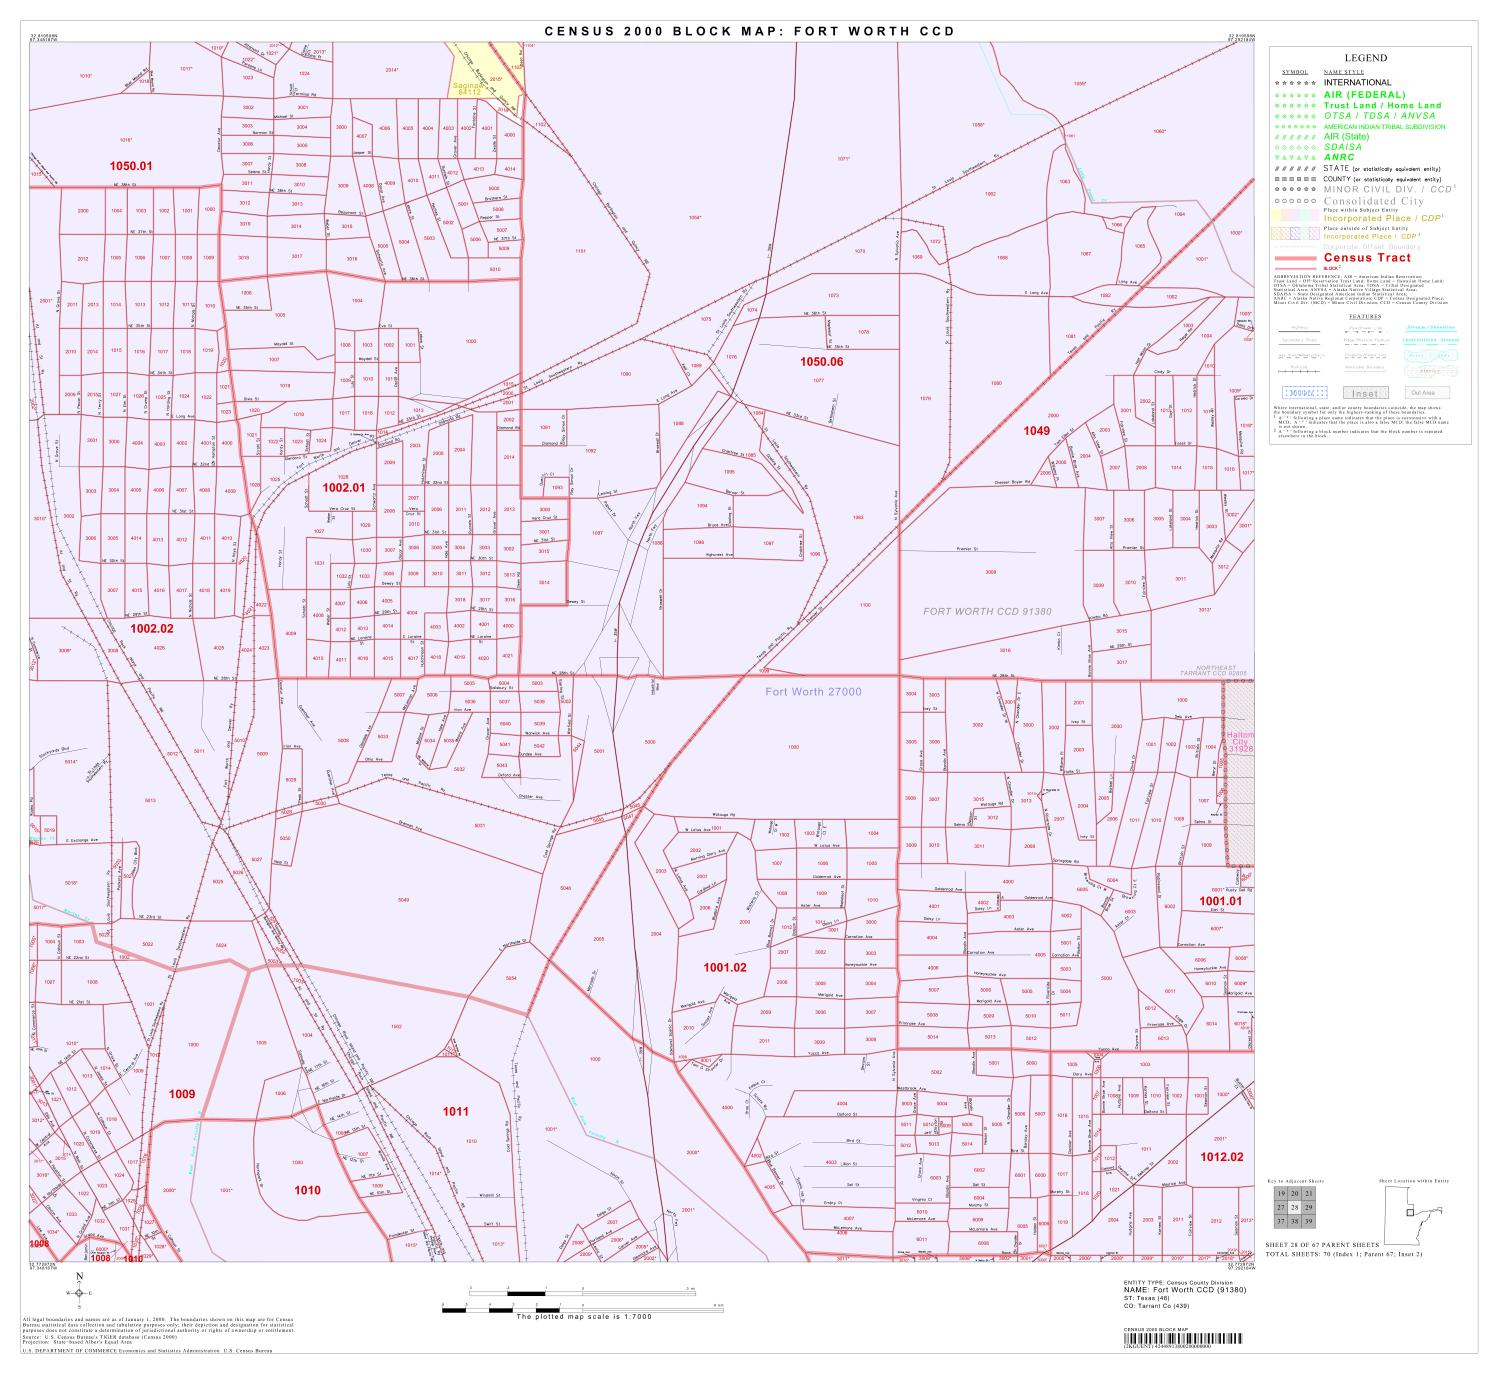 2000 Census County Subdivison Block Map: Fort Worth CCD, Texas, Block 28                                                                                                      [Sequence #]: 1 of 1